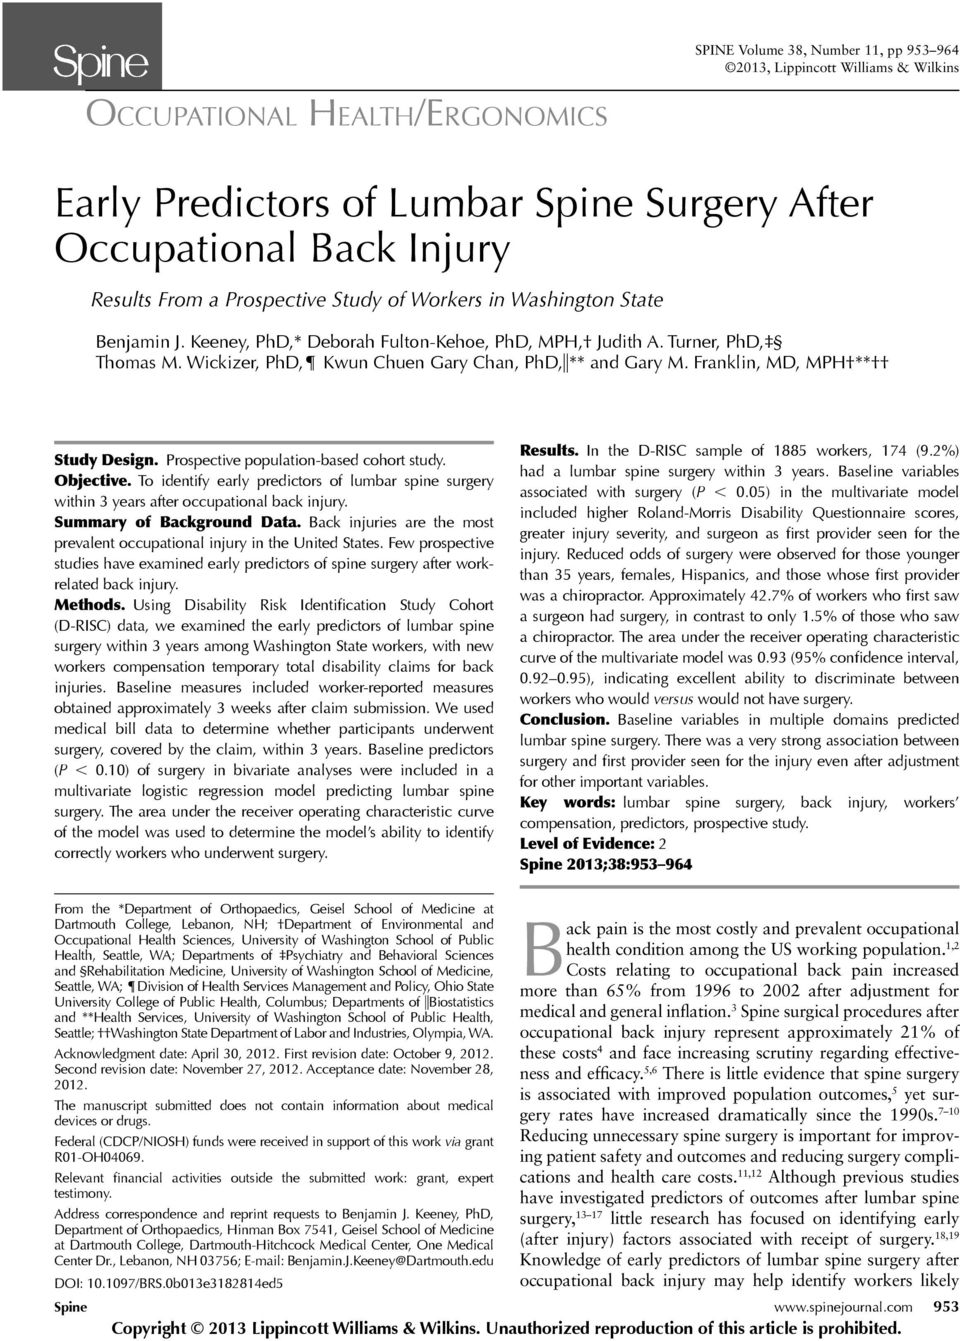 Franklin, MD, MPH ** Study Design. Prospective population-based cohort study. Objective. To identify early predictors of lumbar spine surgery within 3 years after occupational back injury.